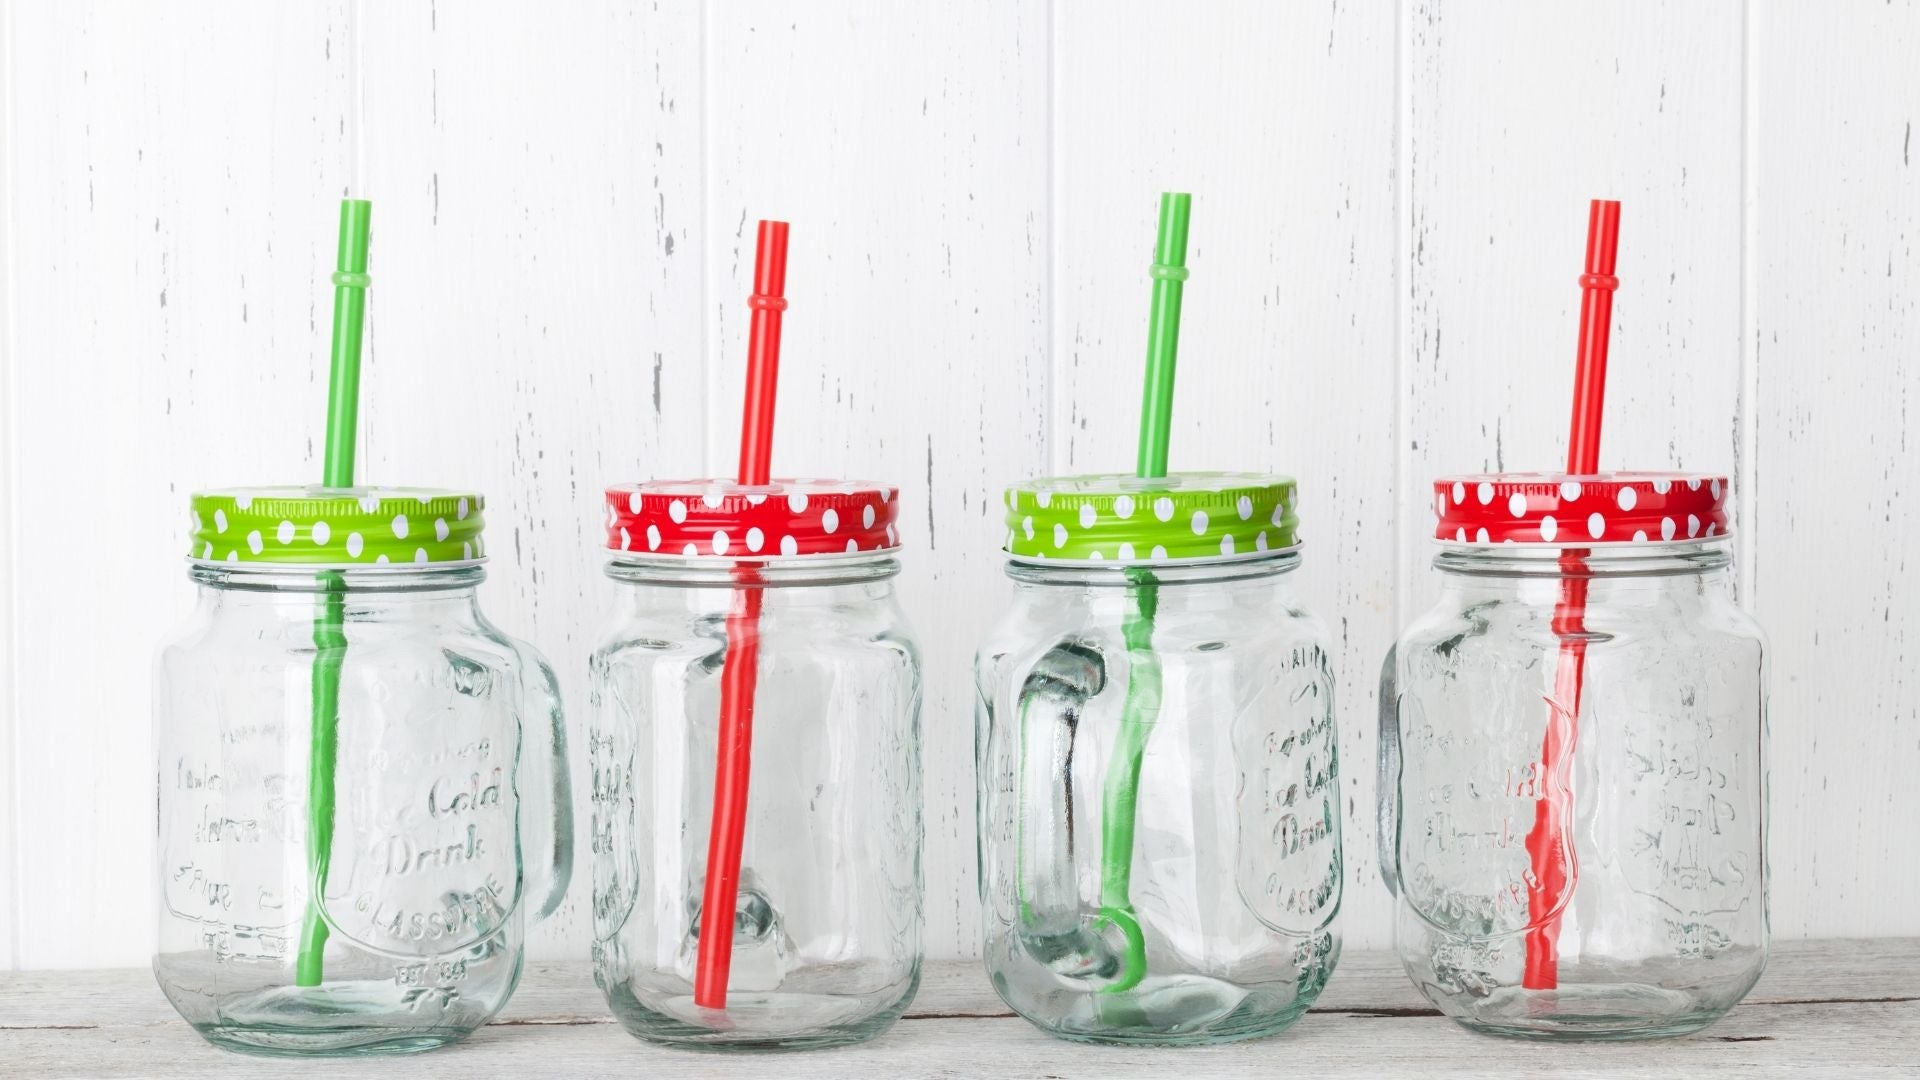 Avoid Using Metal Straws With Lids